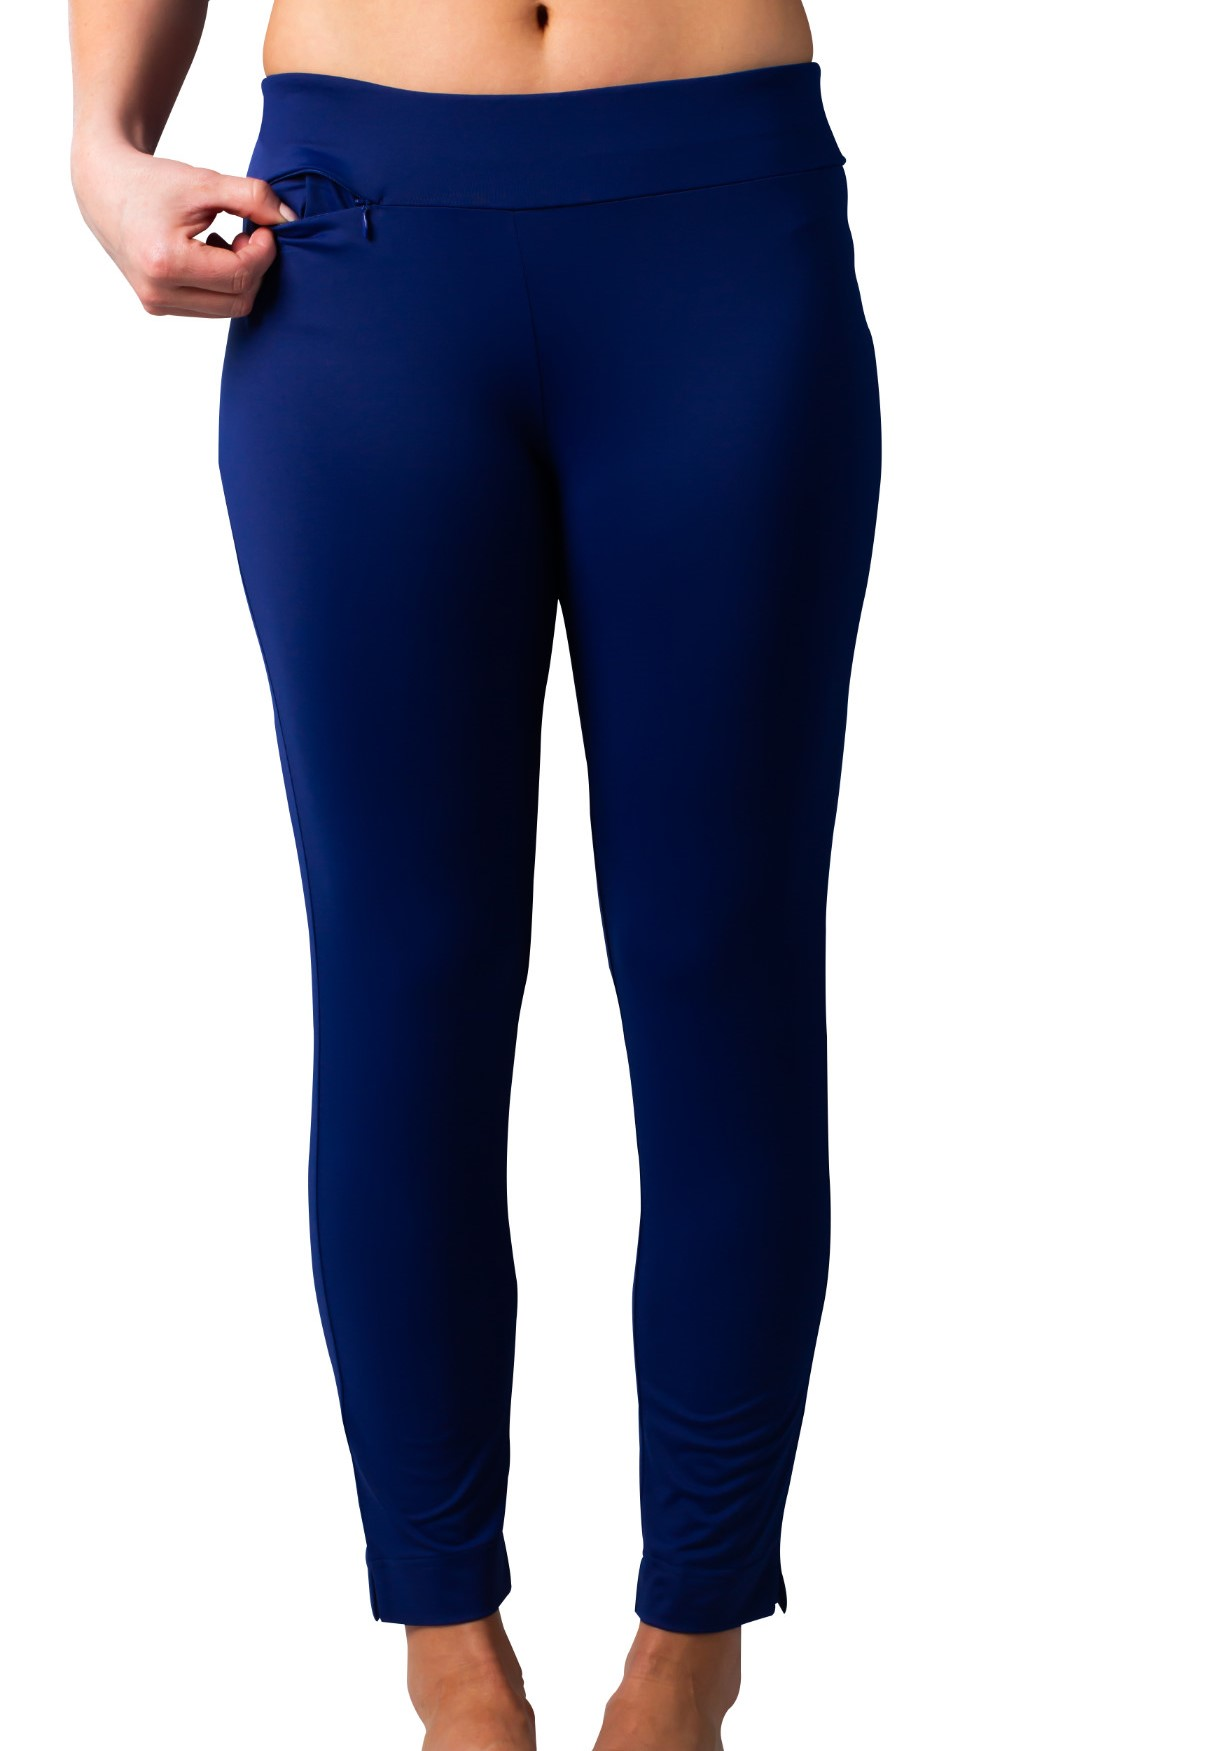 900210I SolStyle ICE Ankle Length Pant. Navy